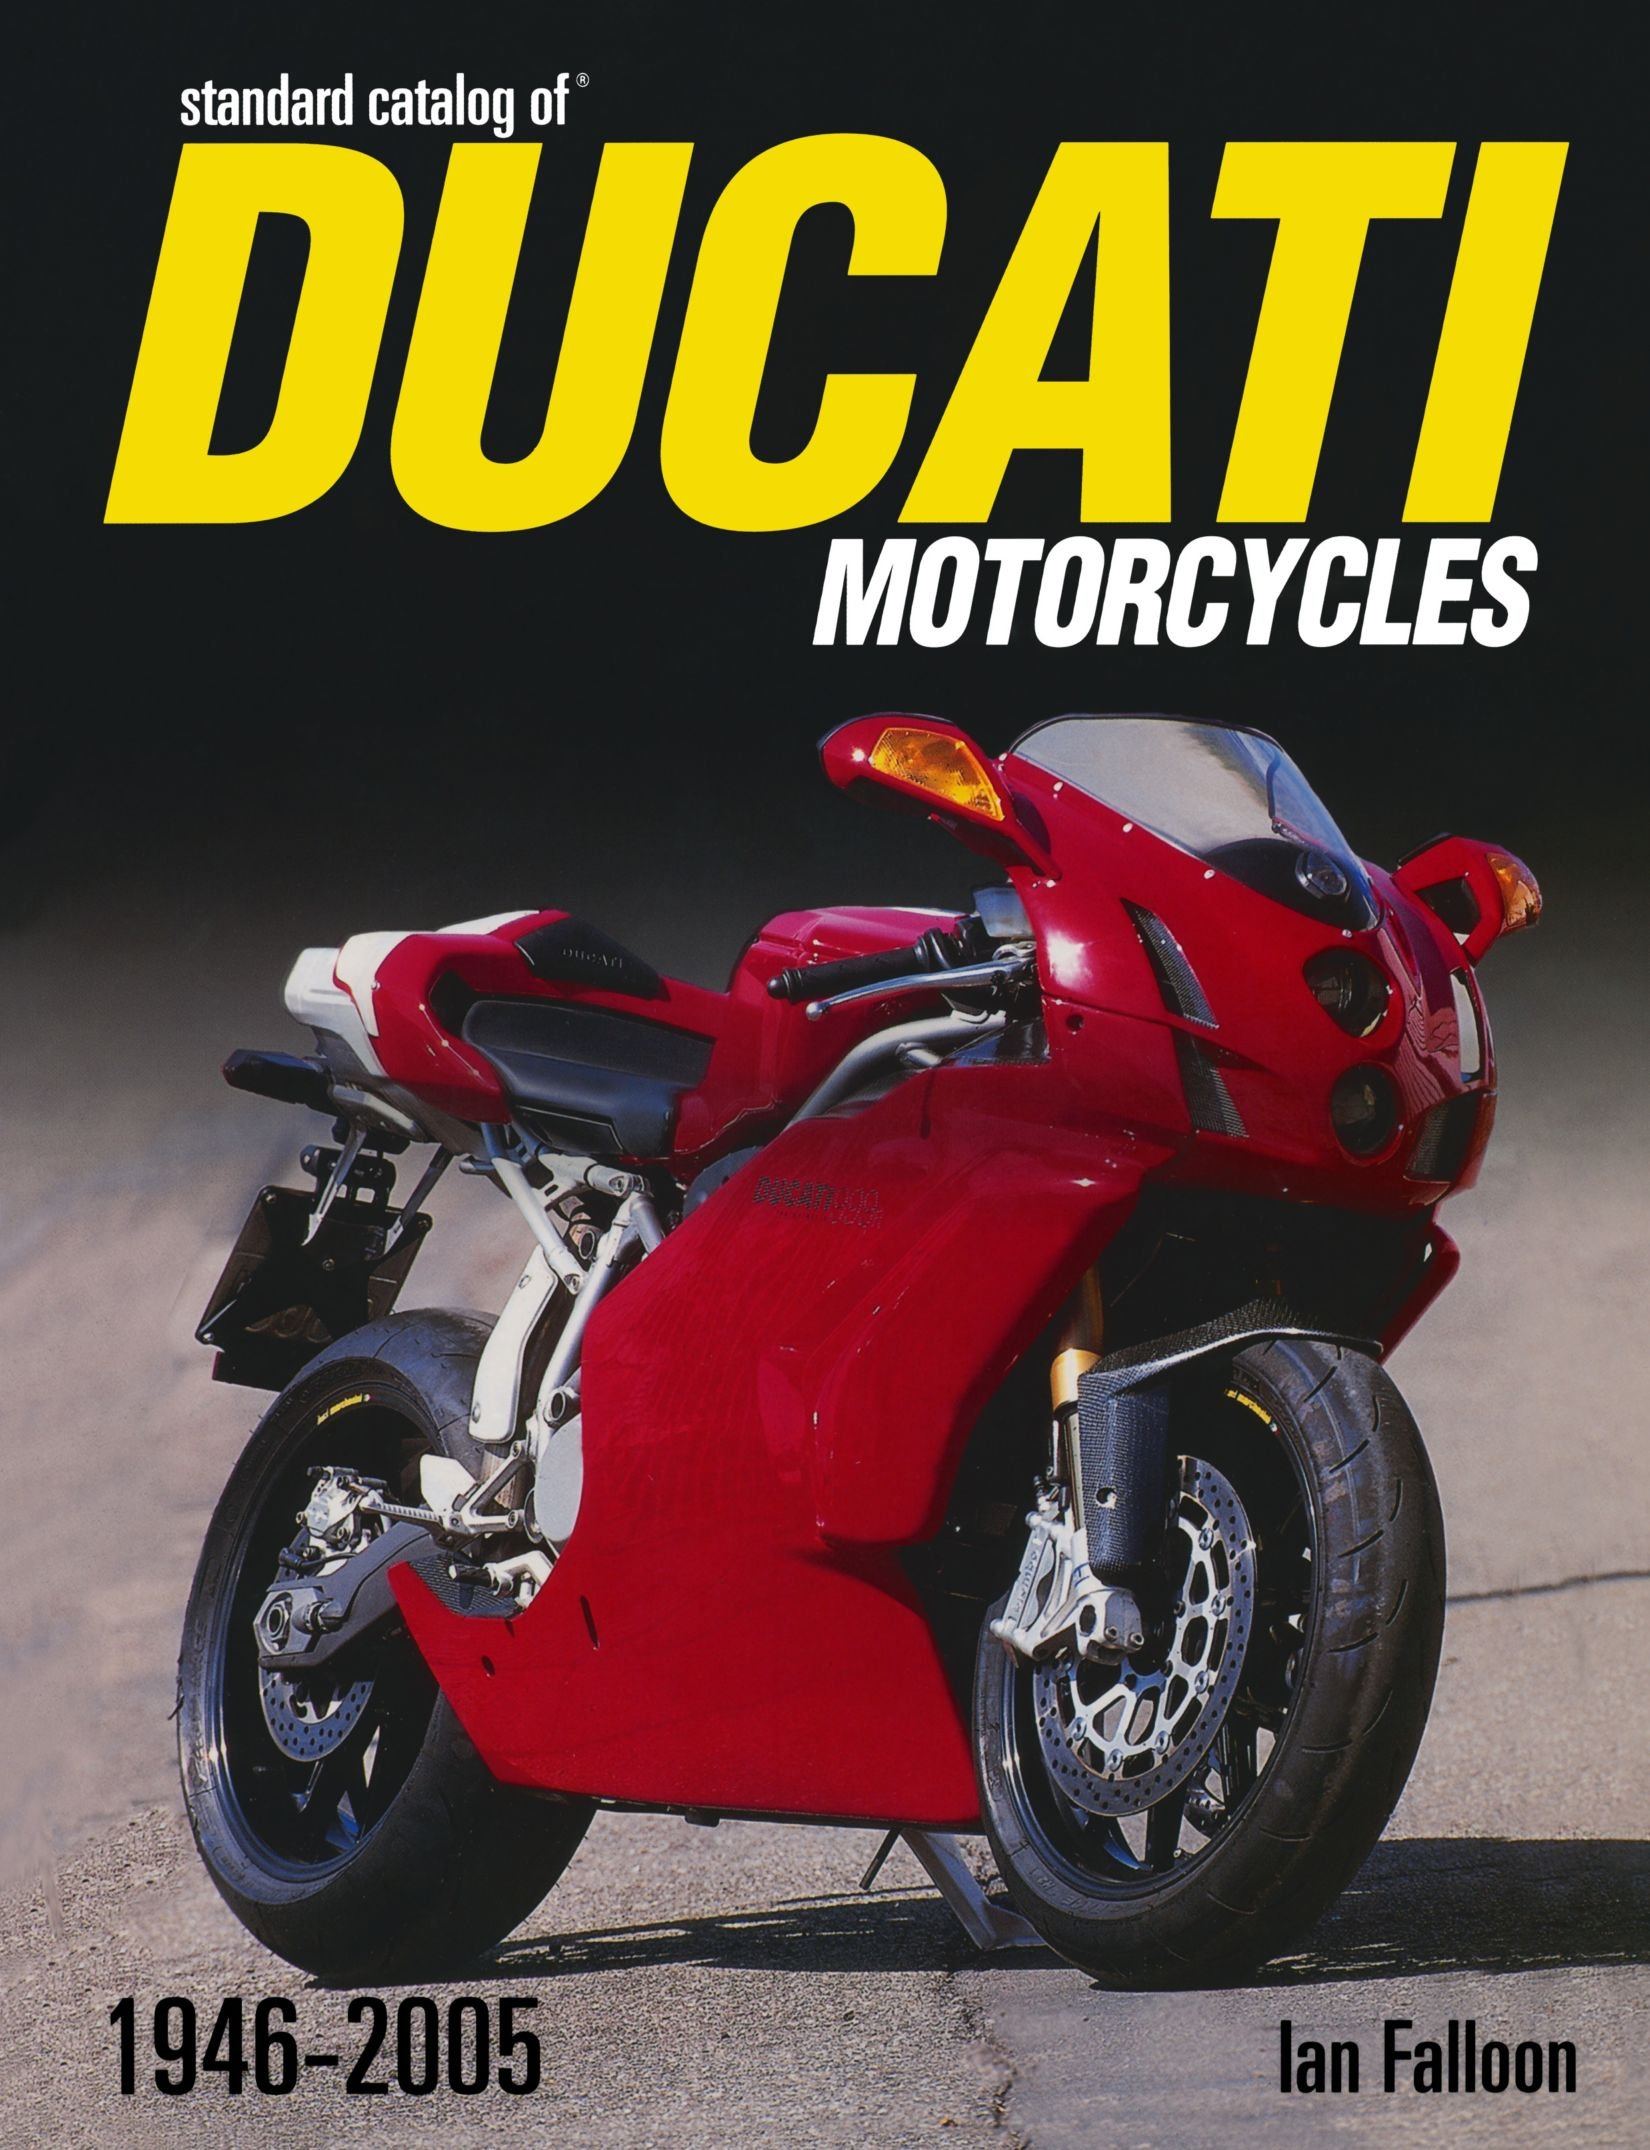 Standard Catalog Of Ducati Motorcycles 1946-2005